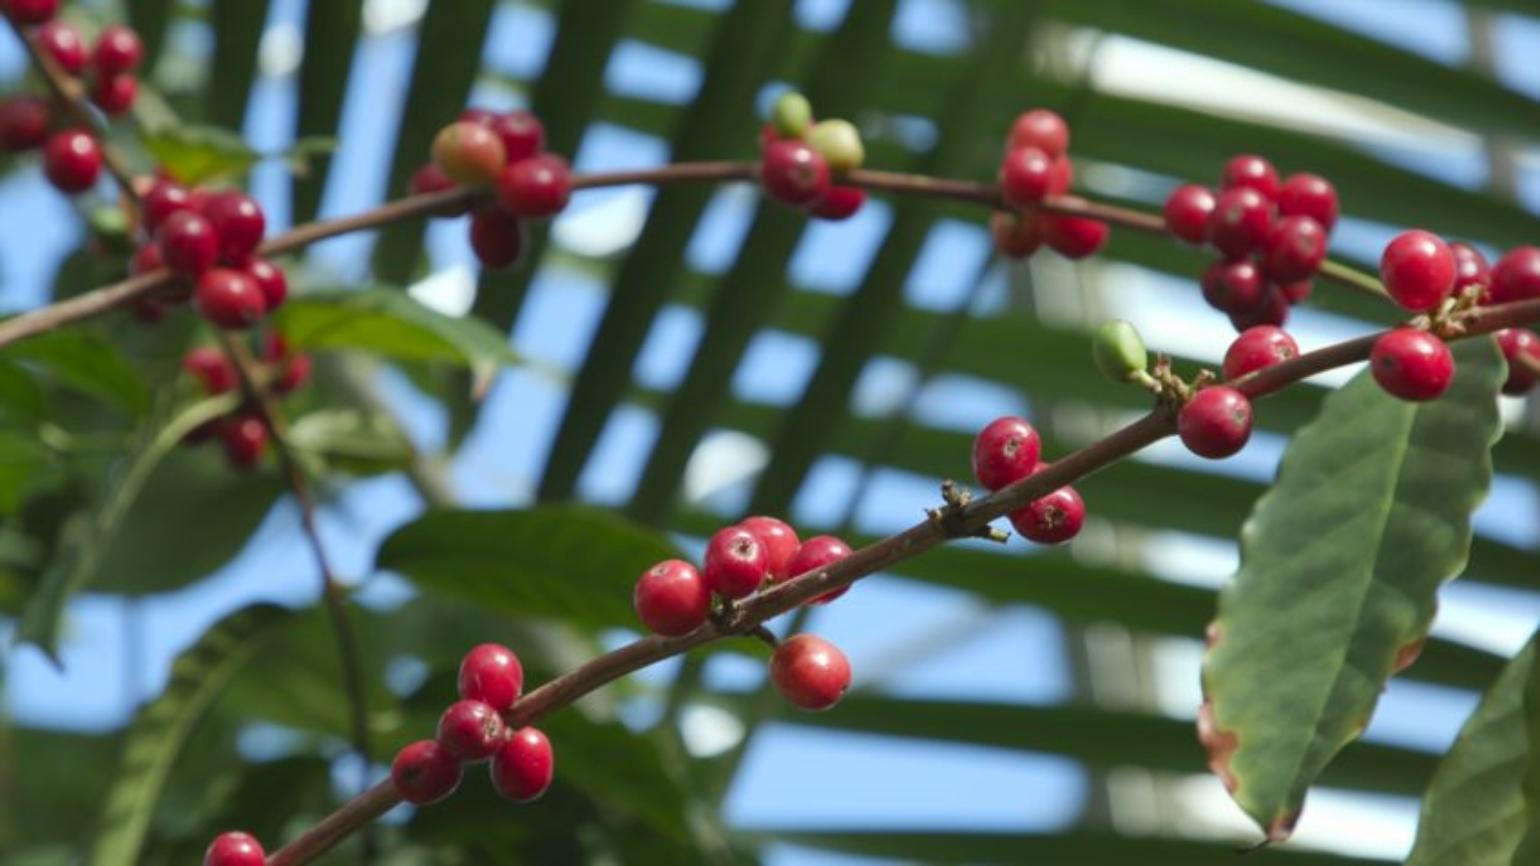 Bright red, rounded berries of arabica coffee